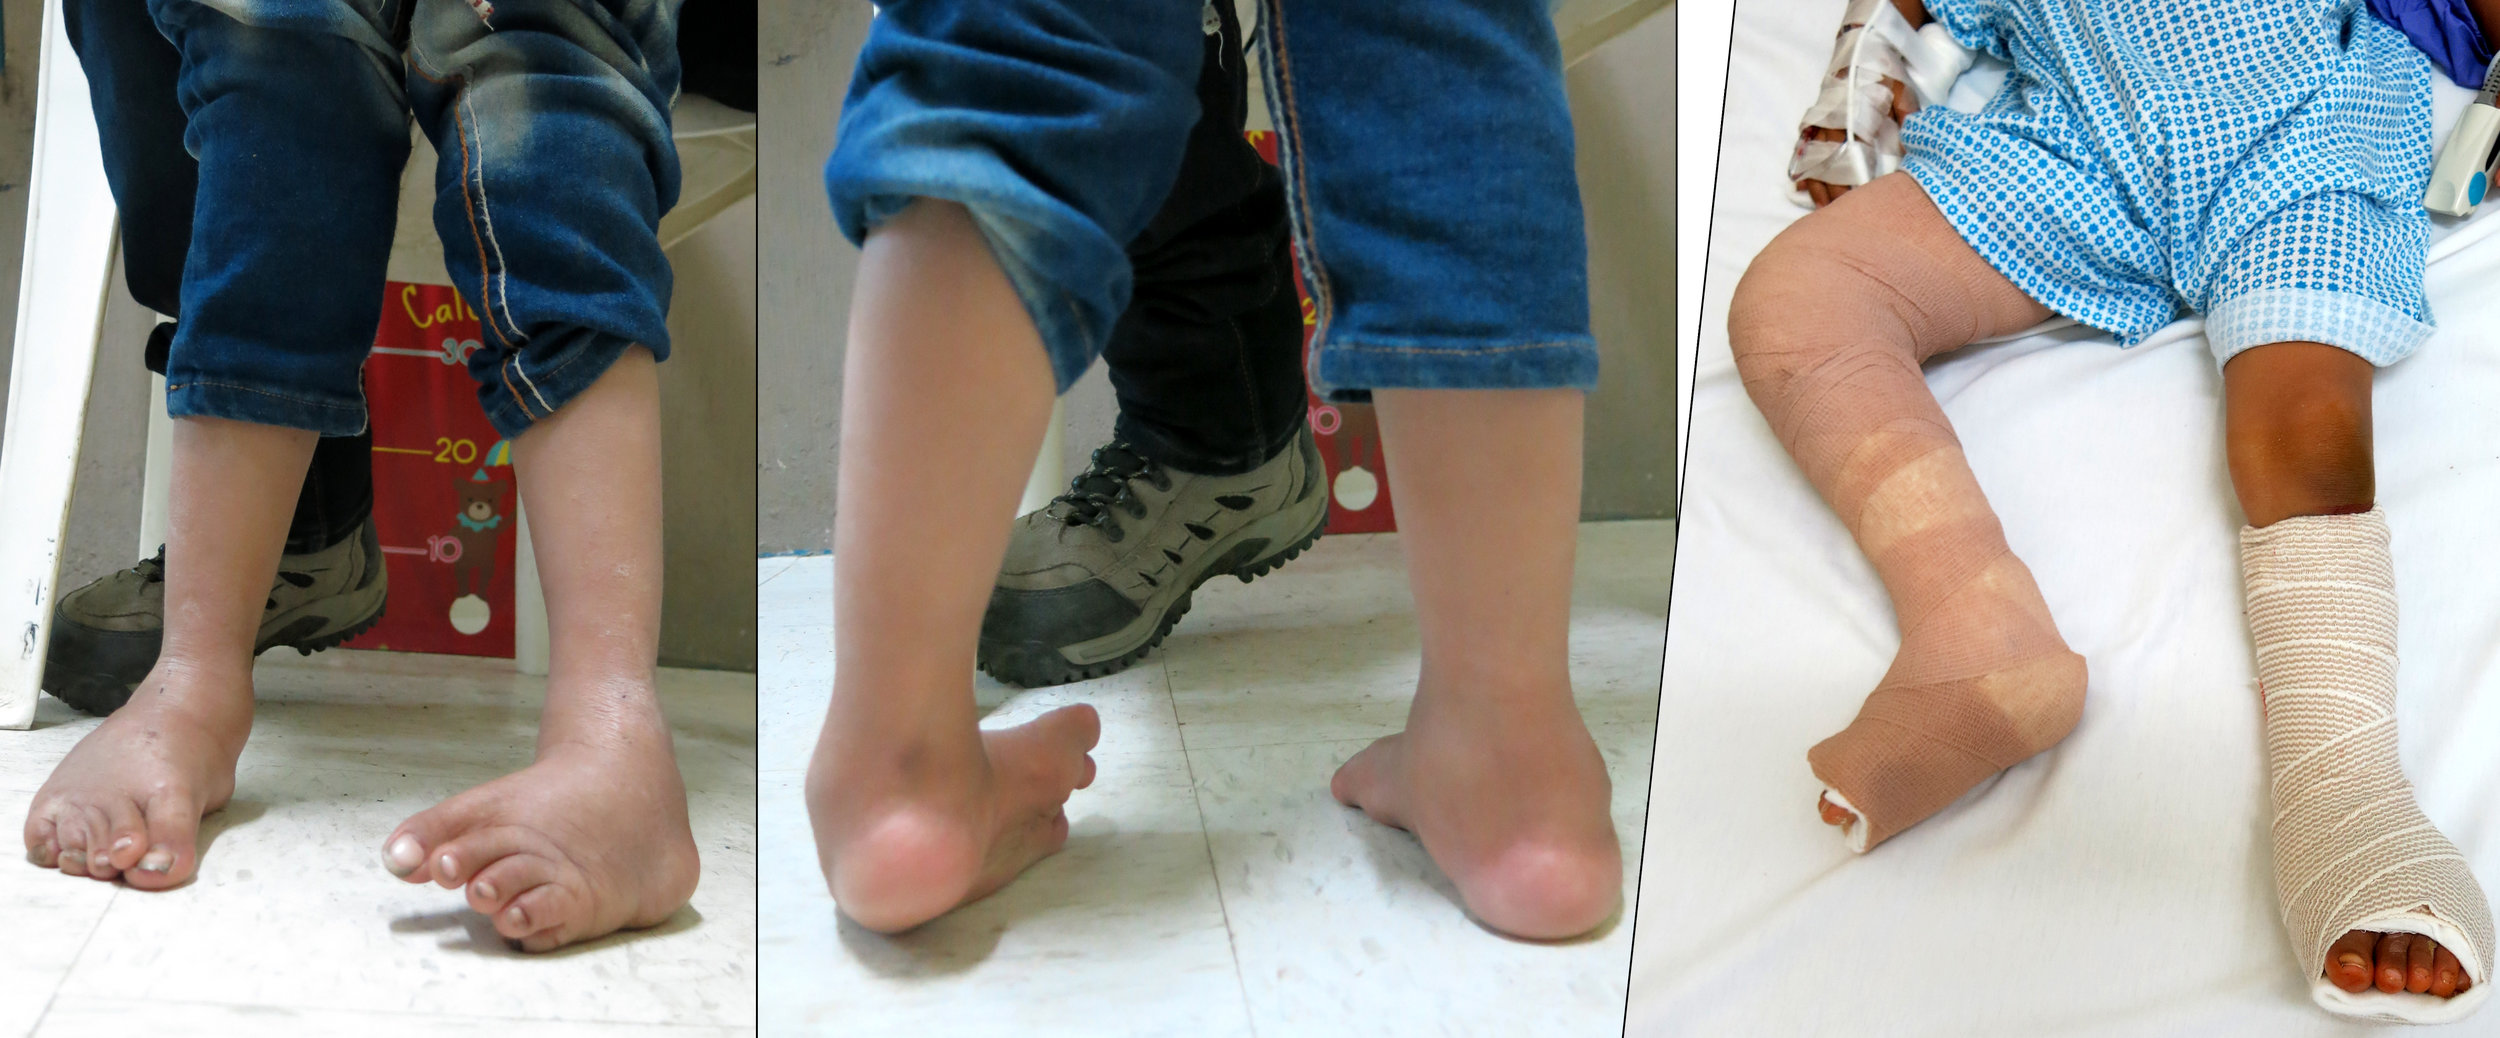 Ponseti casting and clubfoot corrections.